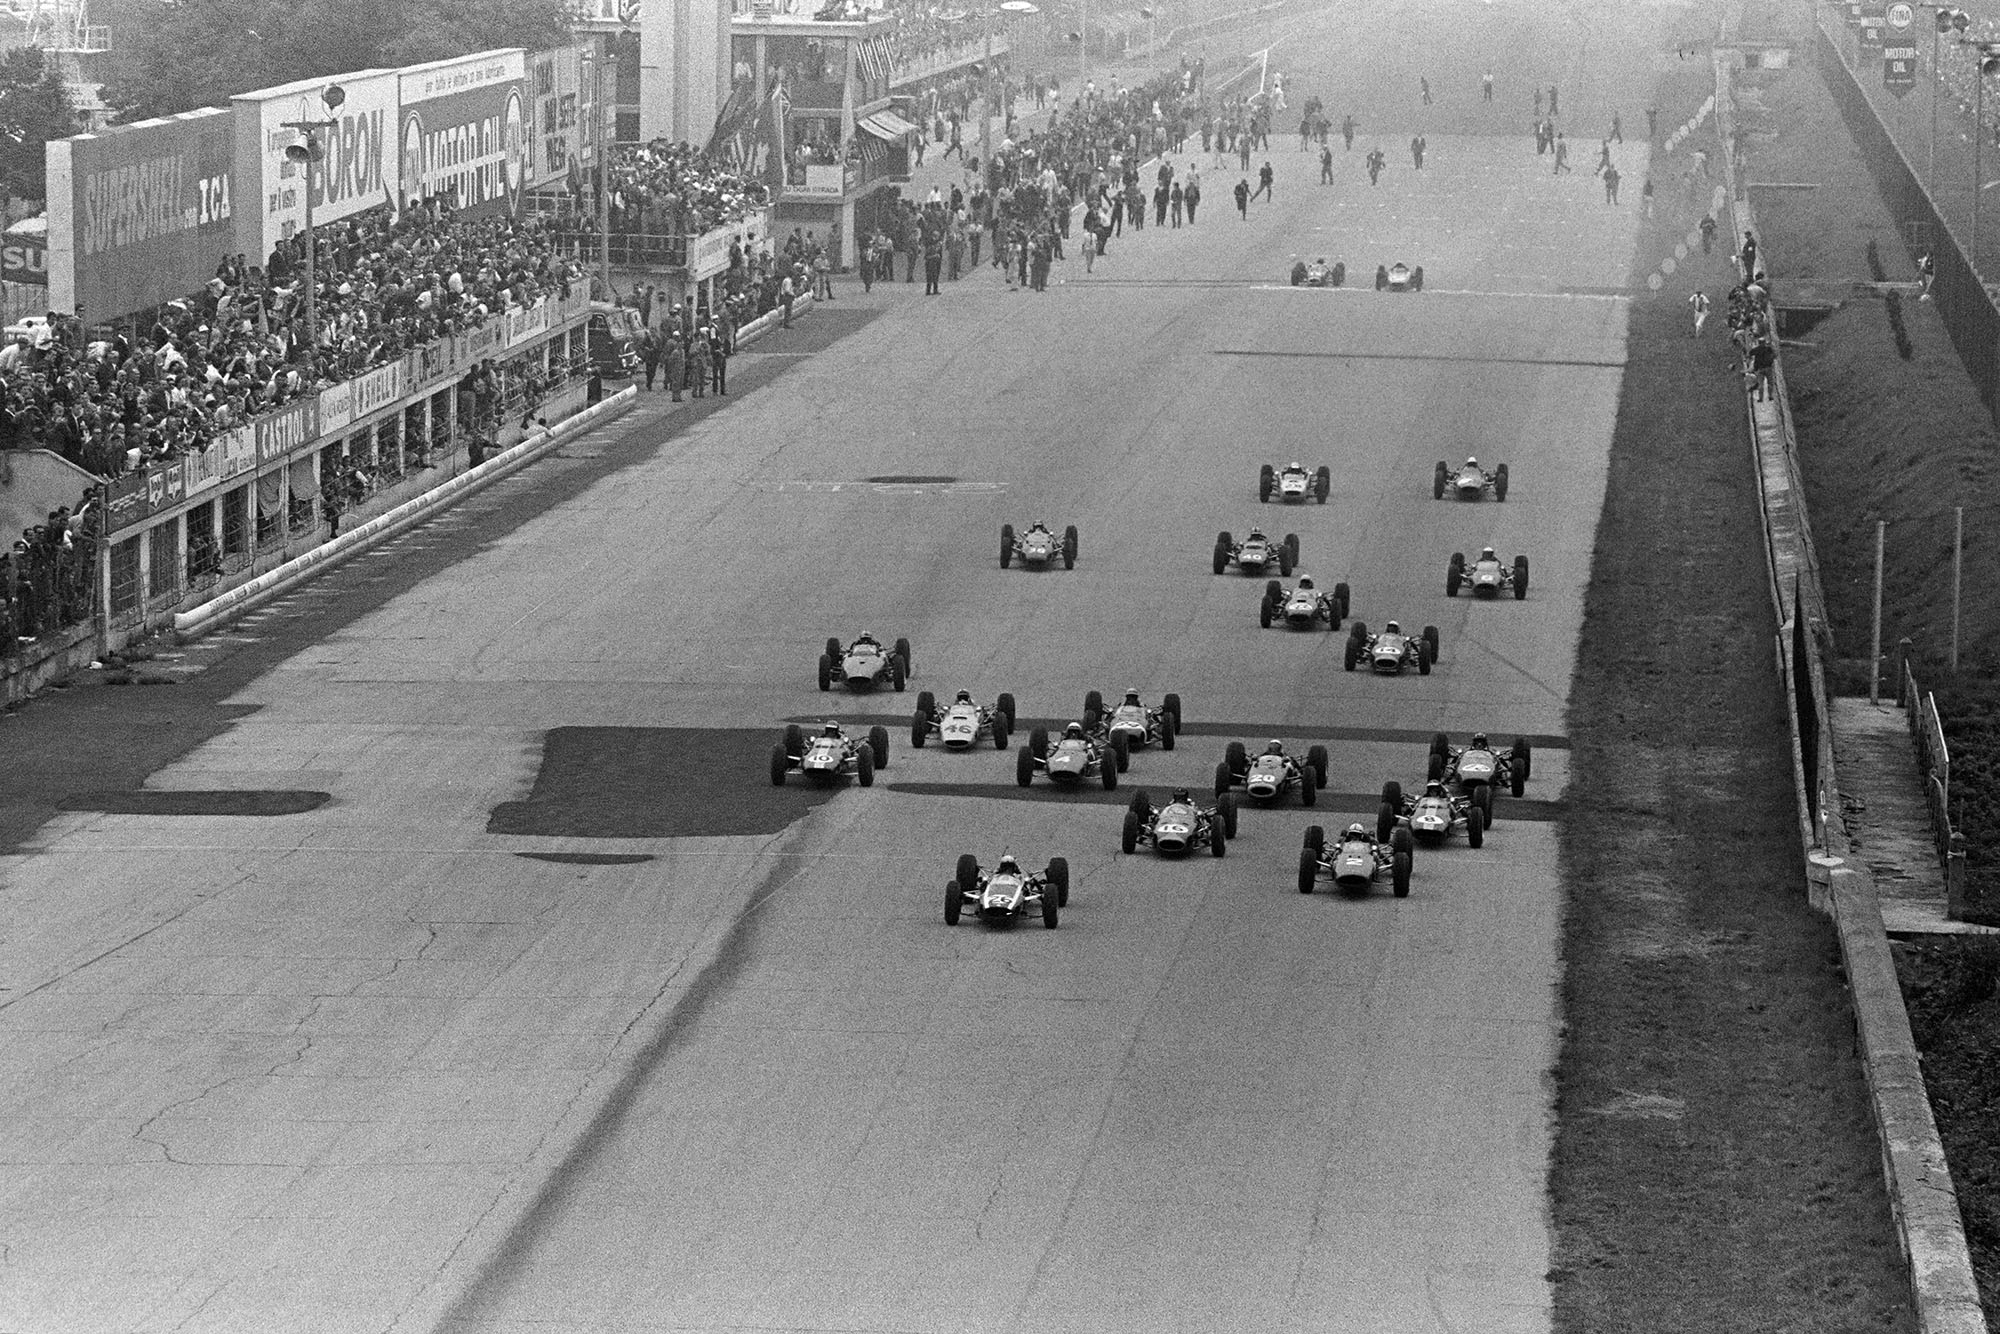 The start of the race. Bruce McLaren, Cooper T73 Climax, John Surtees, Ferrari 158, and Dan Gurney, Brabham BT7 Climax, do battle at the front.